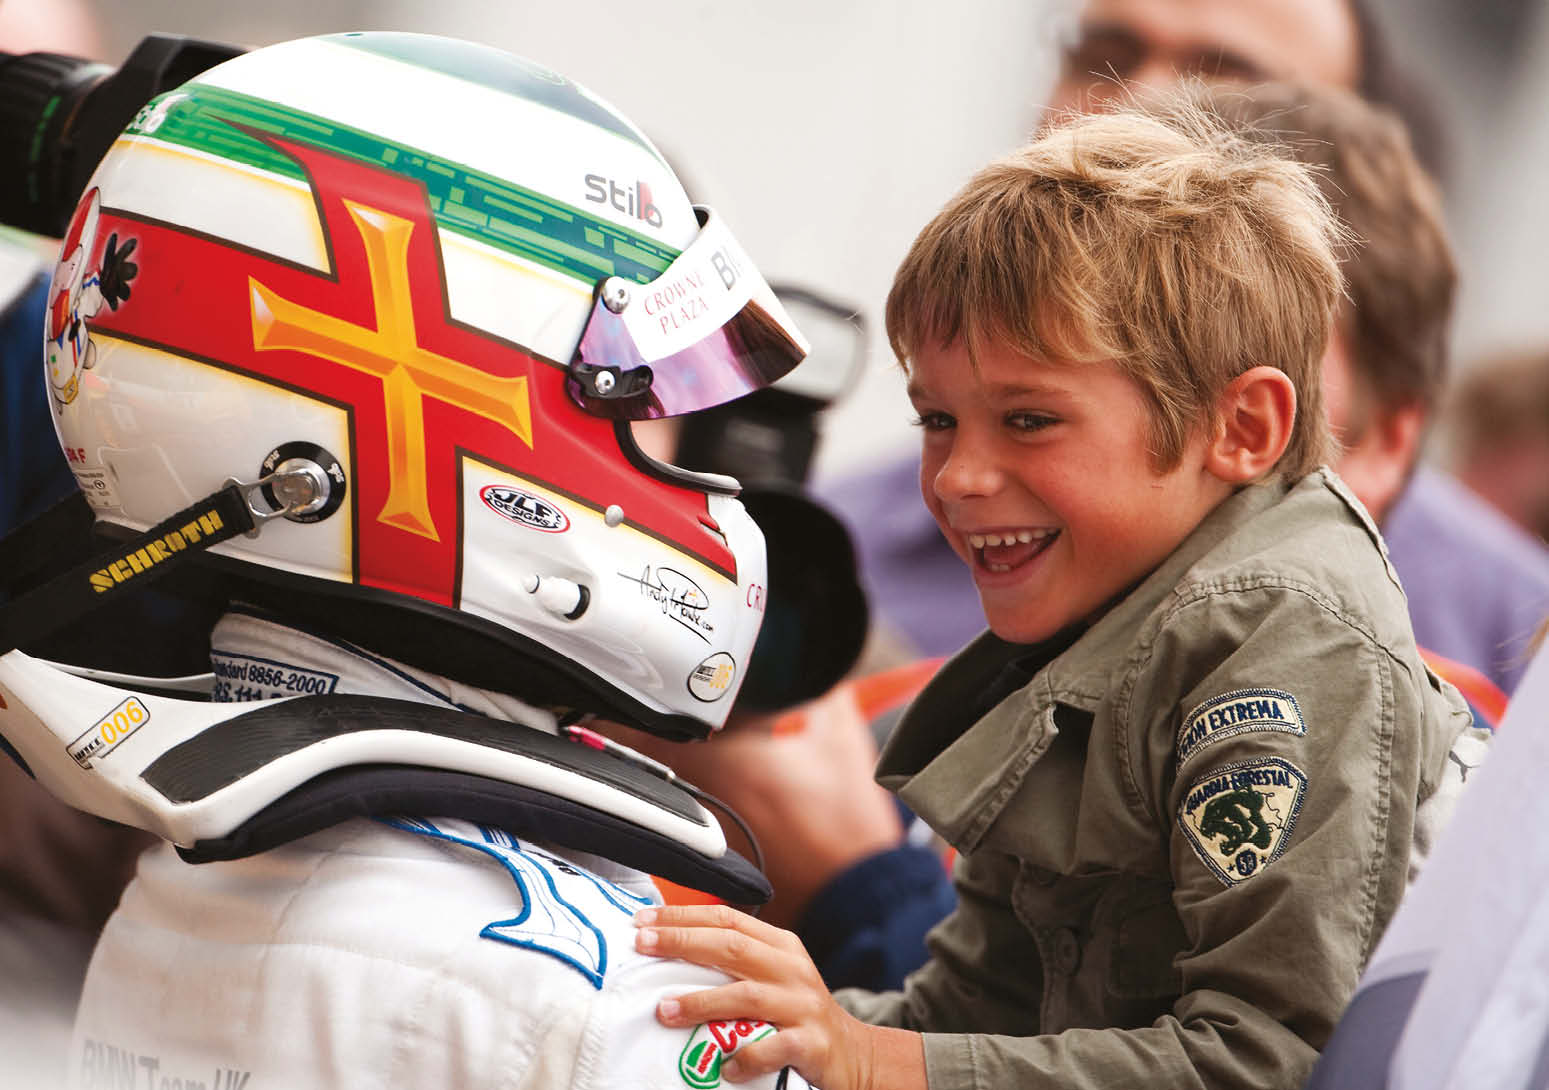 Andy celebrates another WTCC victory back in 2009, with a young Sebastian